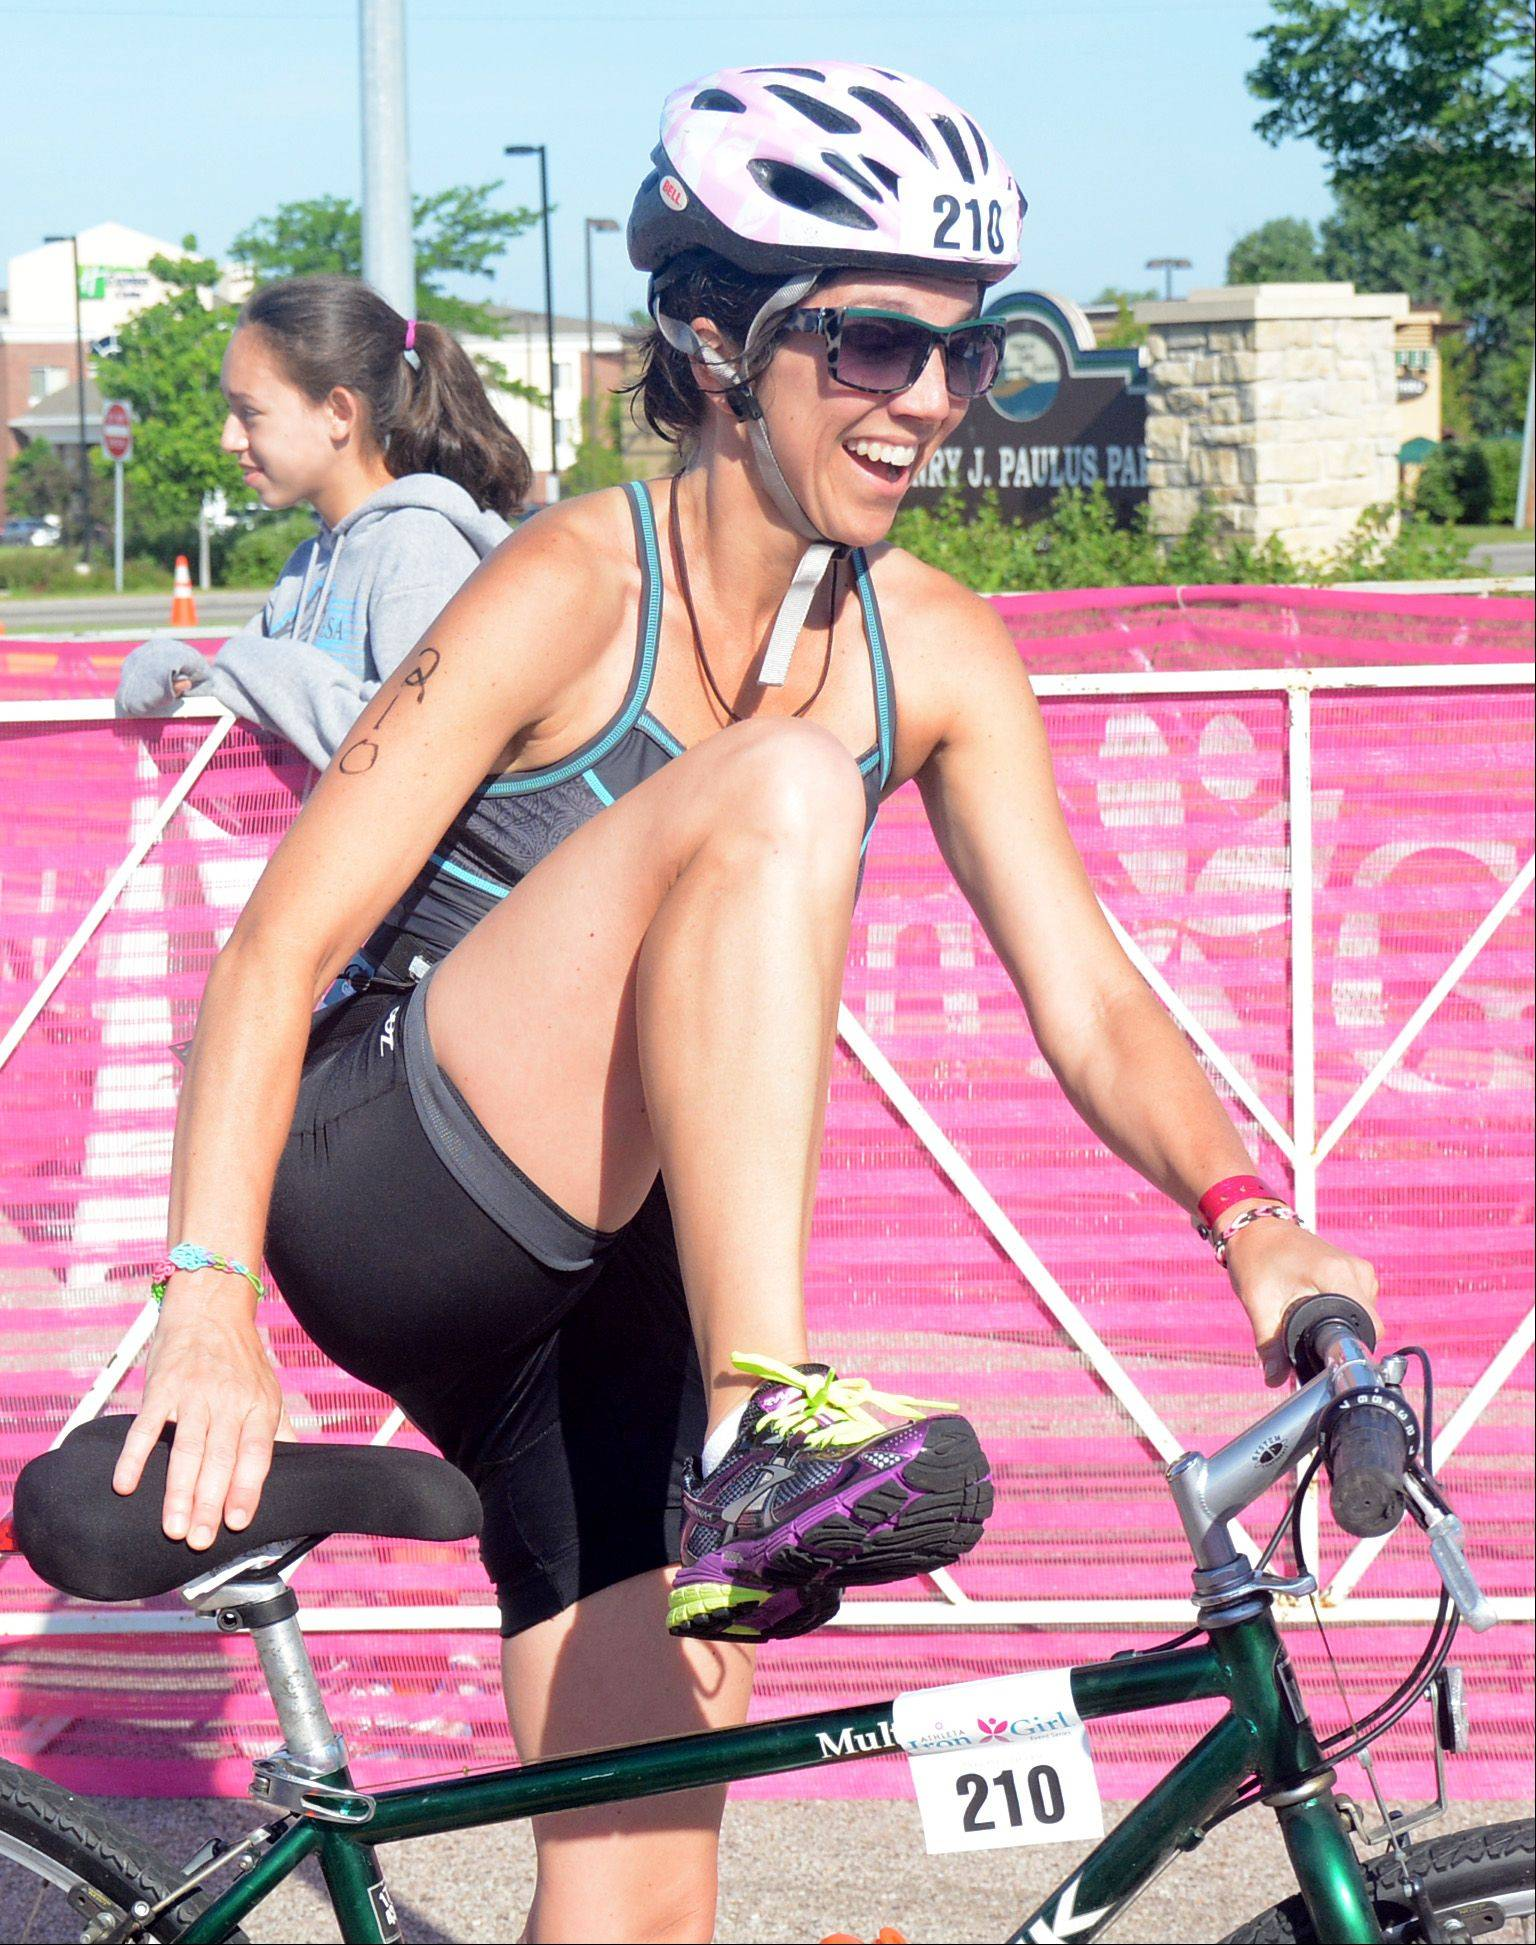 Cindarae Malin, of Lake Zurich, dismounts her bike during the Athleta Iron Girl Triathlon in Lake Zurich Sunday.